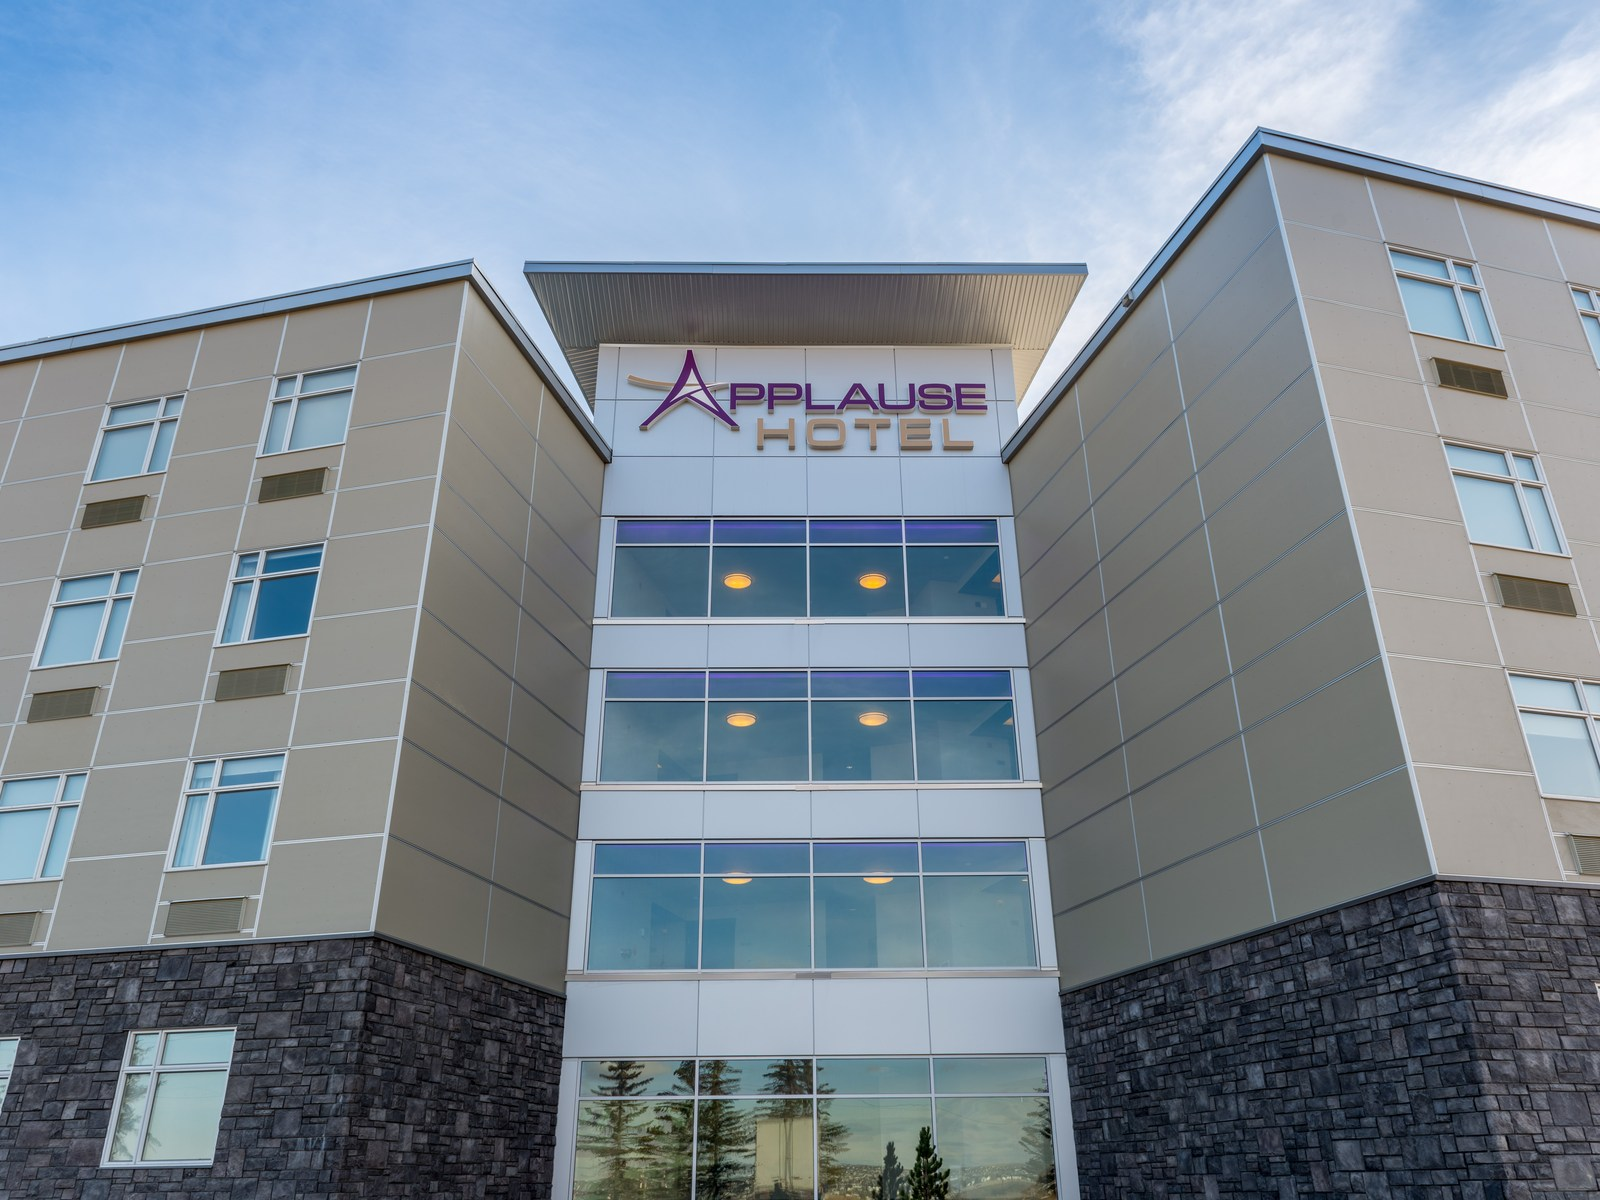 applause hotel calgary airport these are your days made to holiday year of me santa barbara eternal reflections photography travel blogger